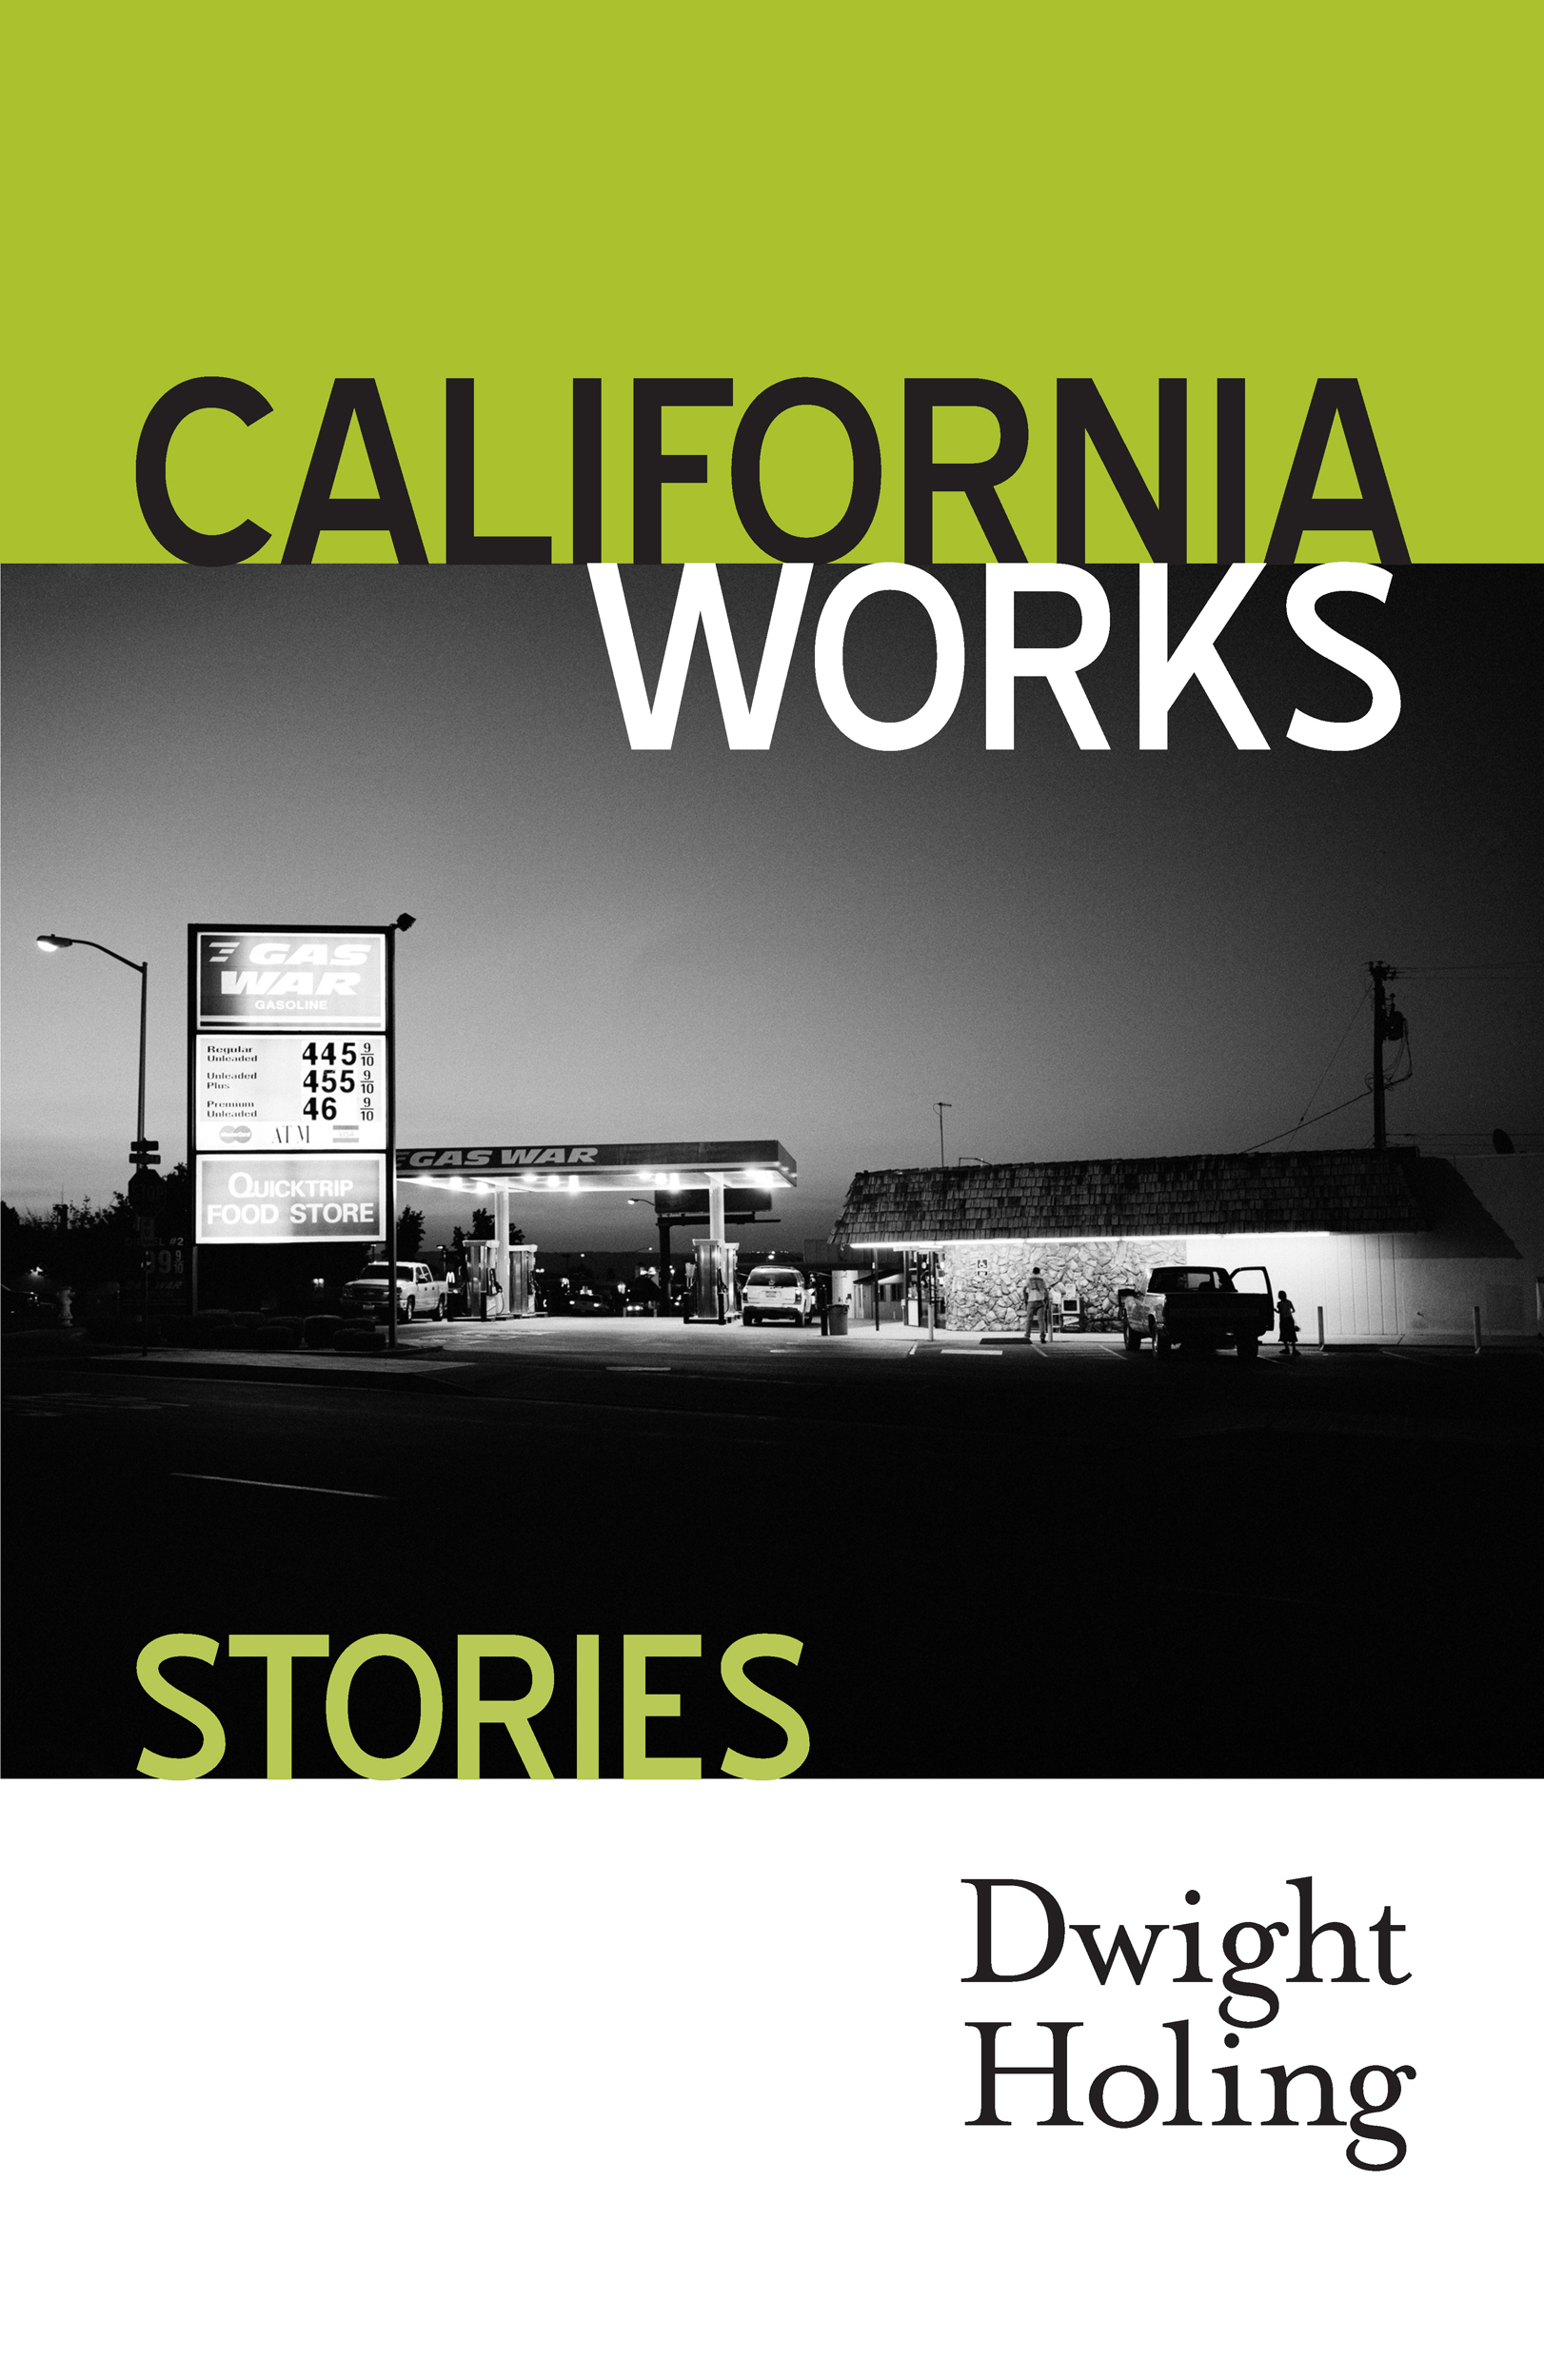 California_Works_by_Dwight_Holing